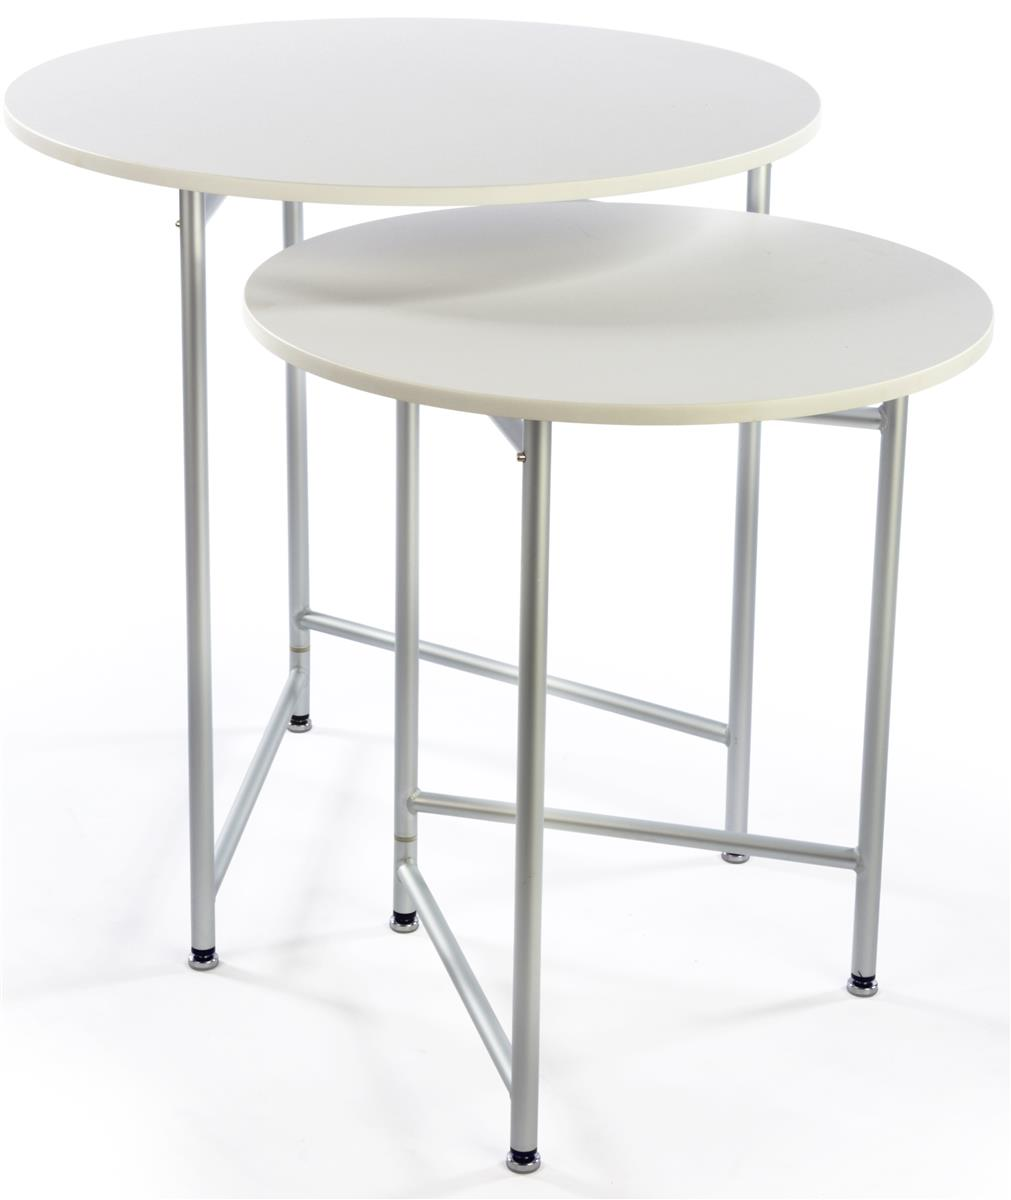 White Nesting Table For Retail Store ~ Nesting display tables retail merchandsing fixtures